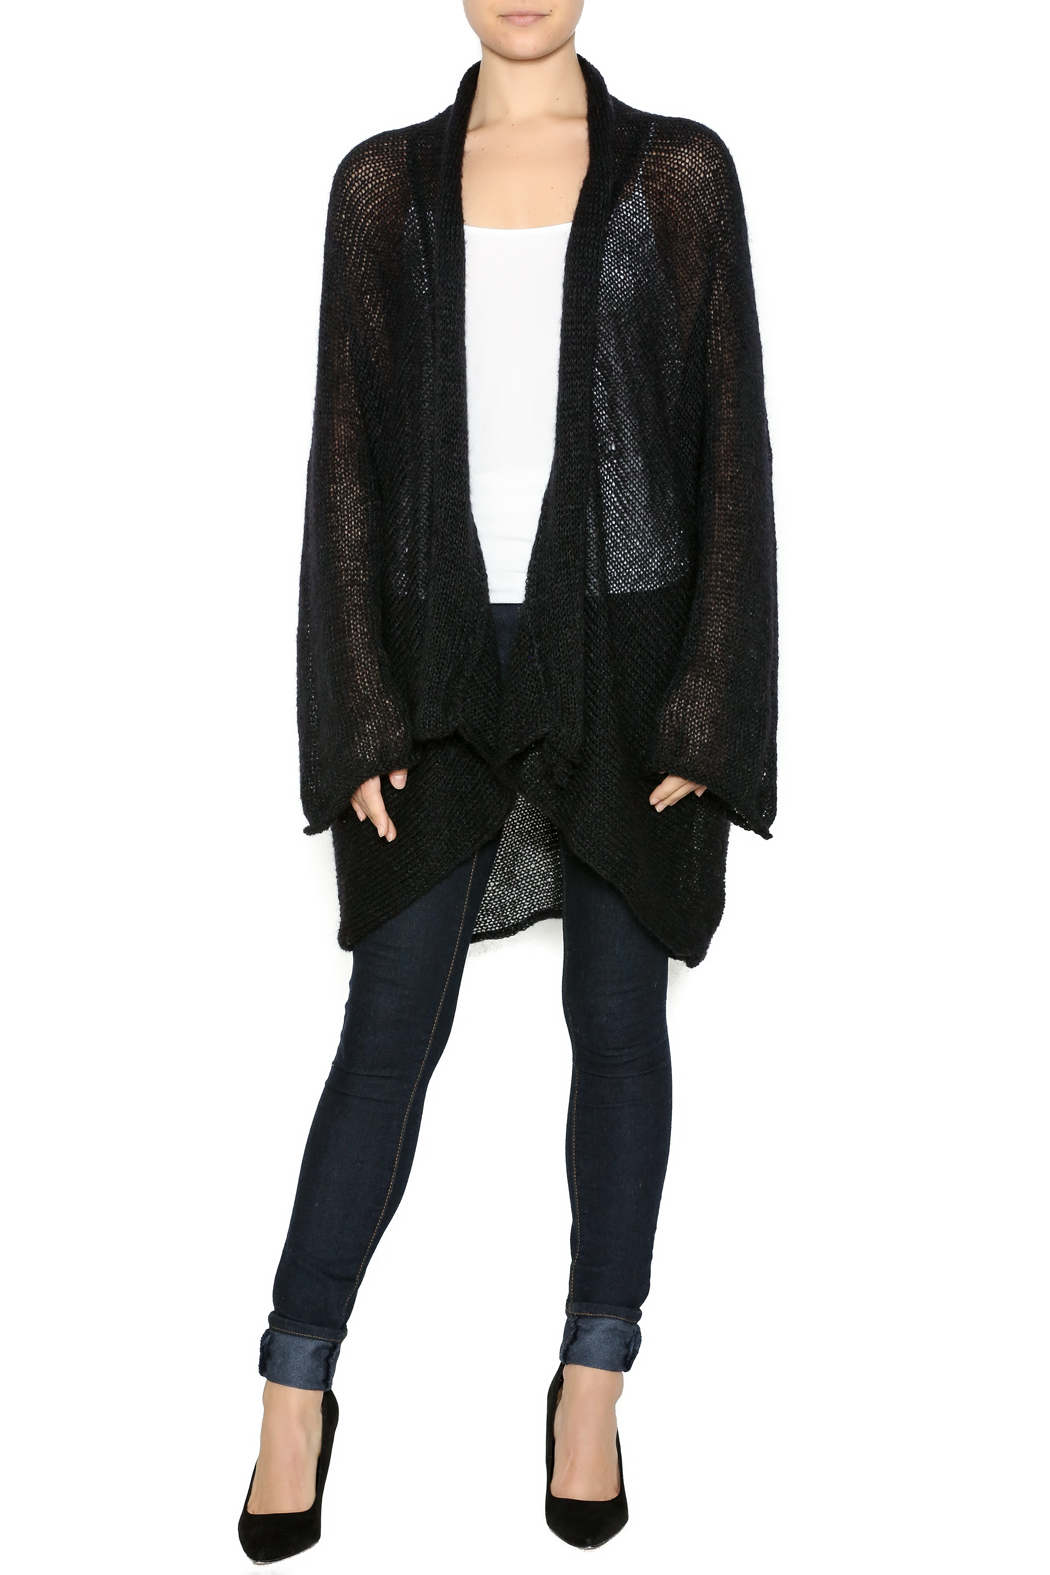 DC KNITS Black Mohair Cardigan - Front Full Image